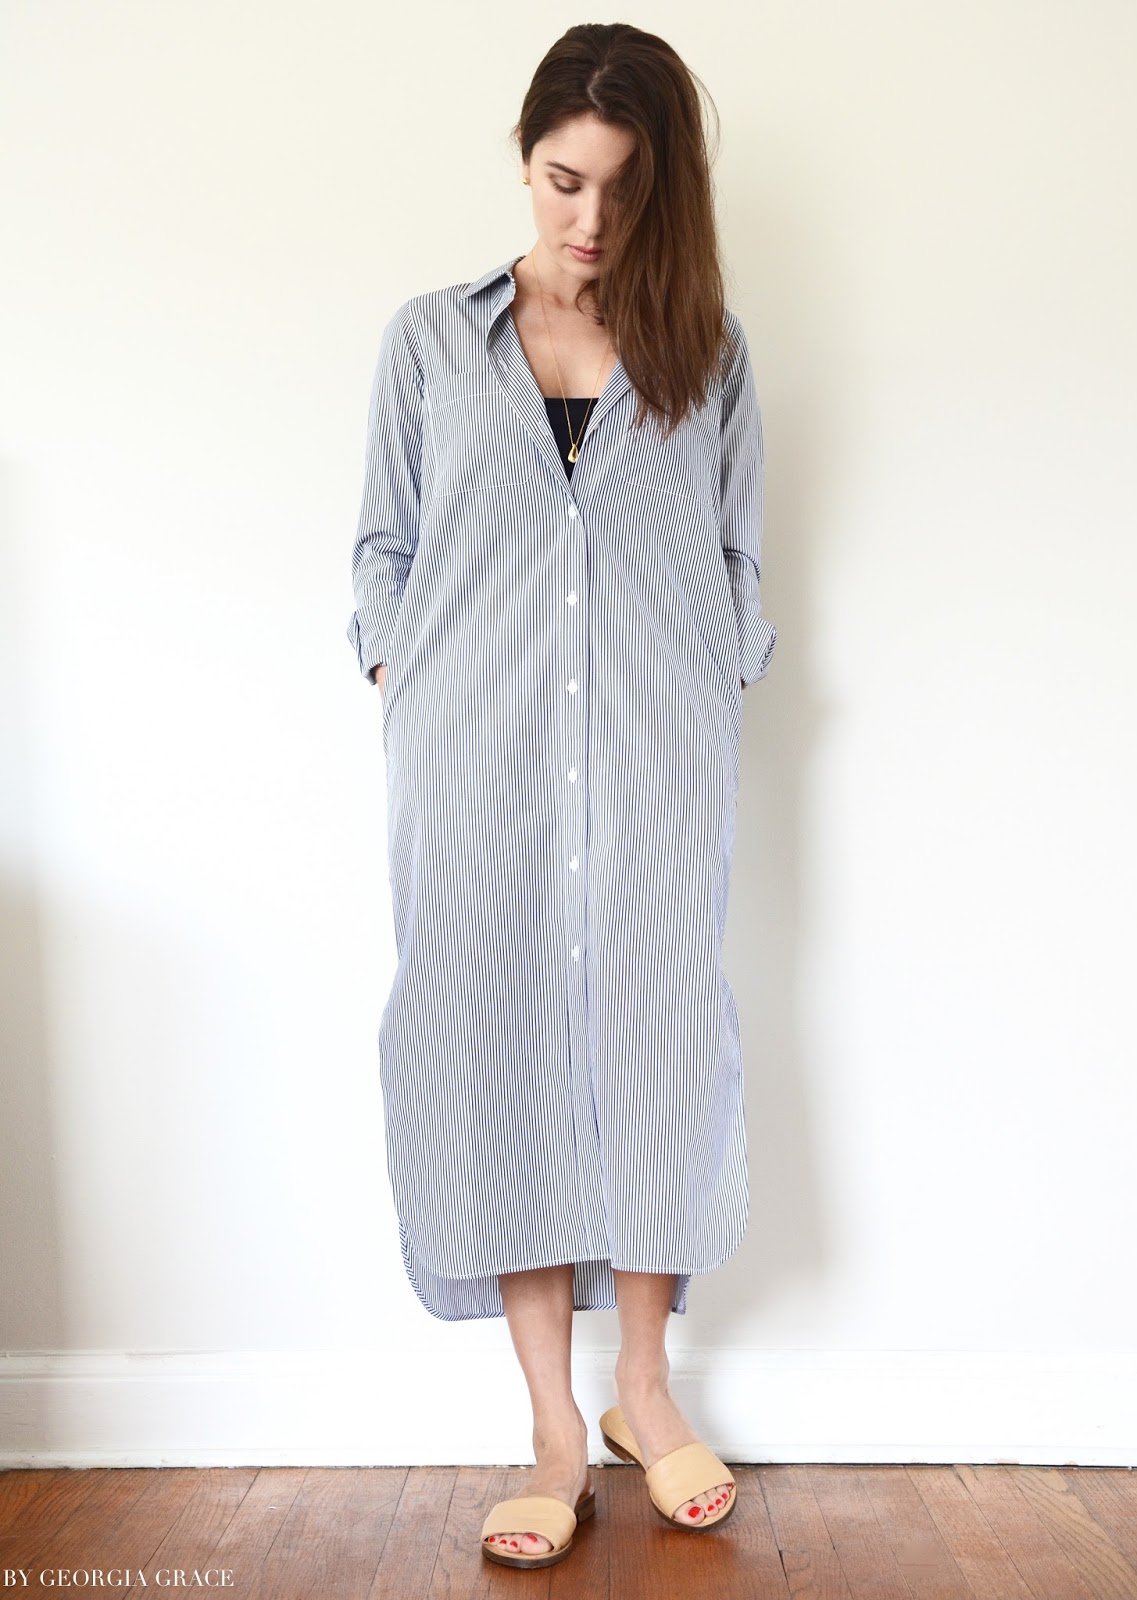 Everlane Striped Cotton Poplin Long Shirt Dress Review By